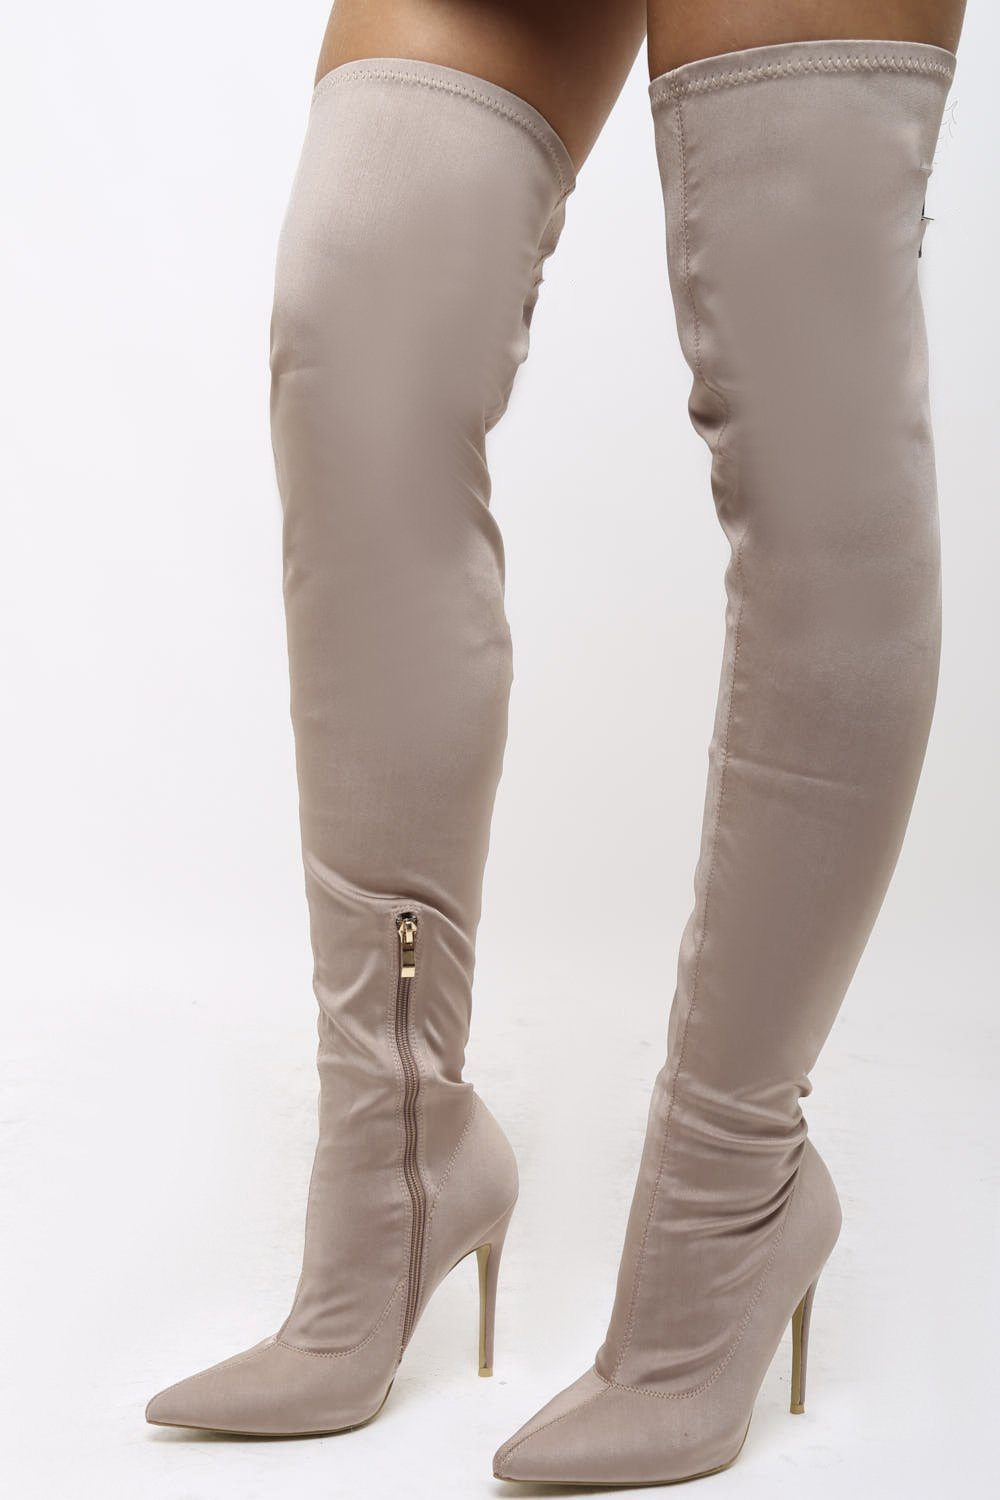 85bdb877f4cb Olivia Lycra Over the Knee Boots in Mocha 63% off